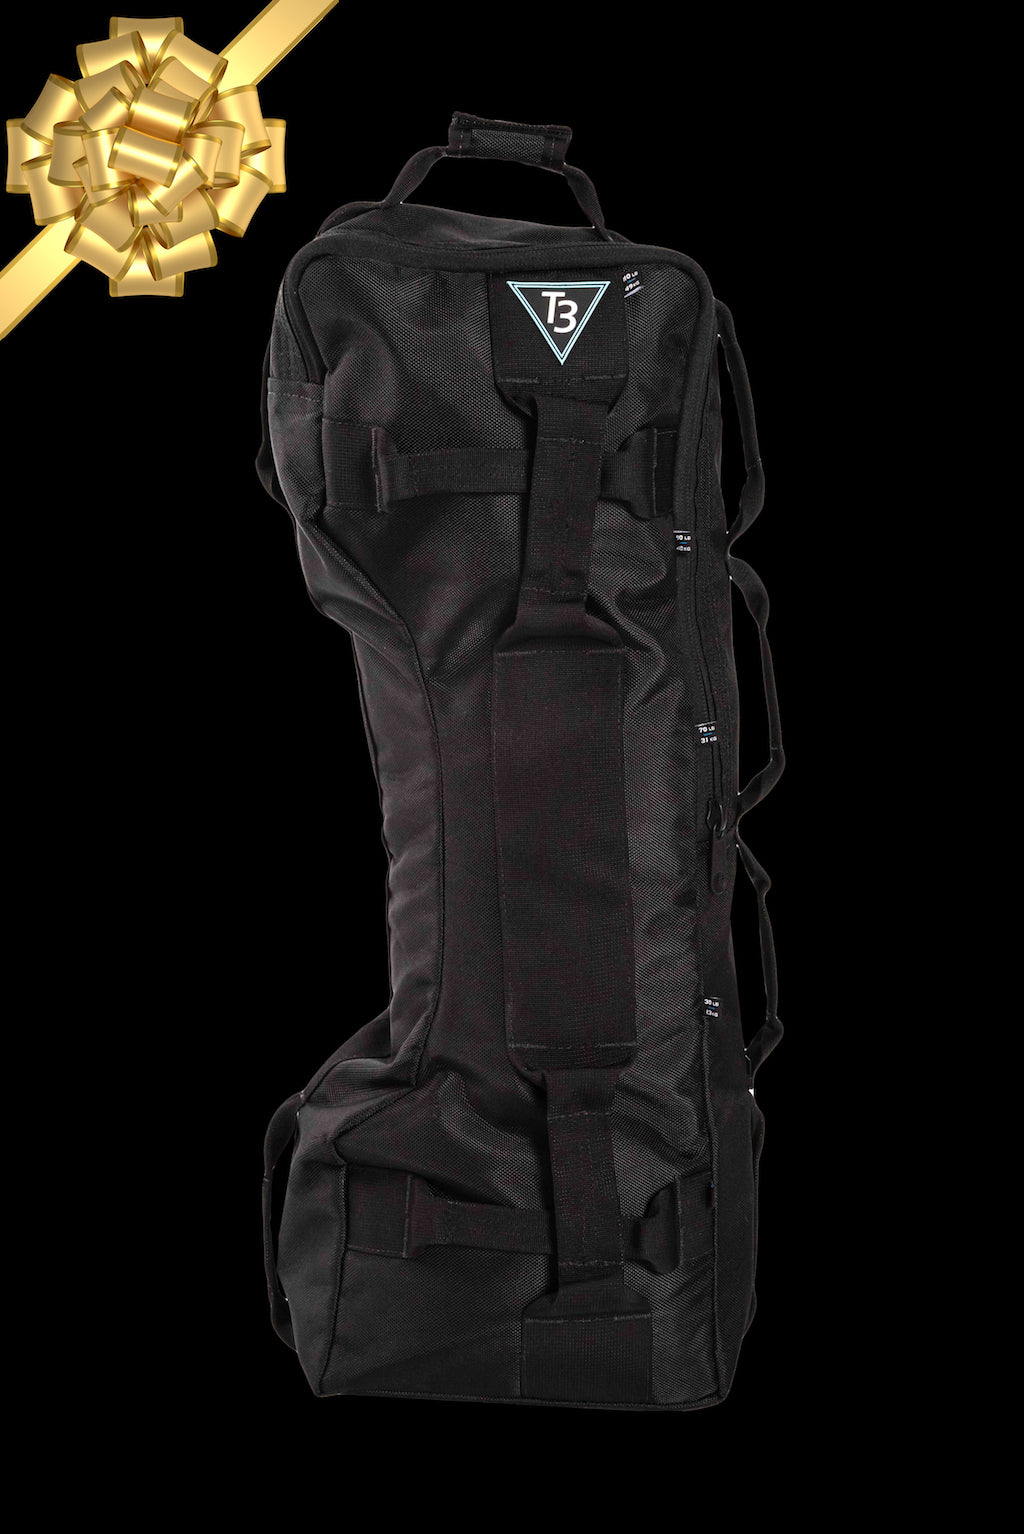 T3 Bag Large by T3 Powerready